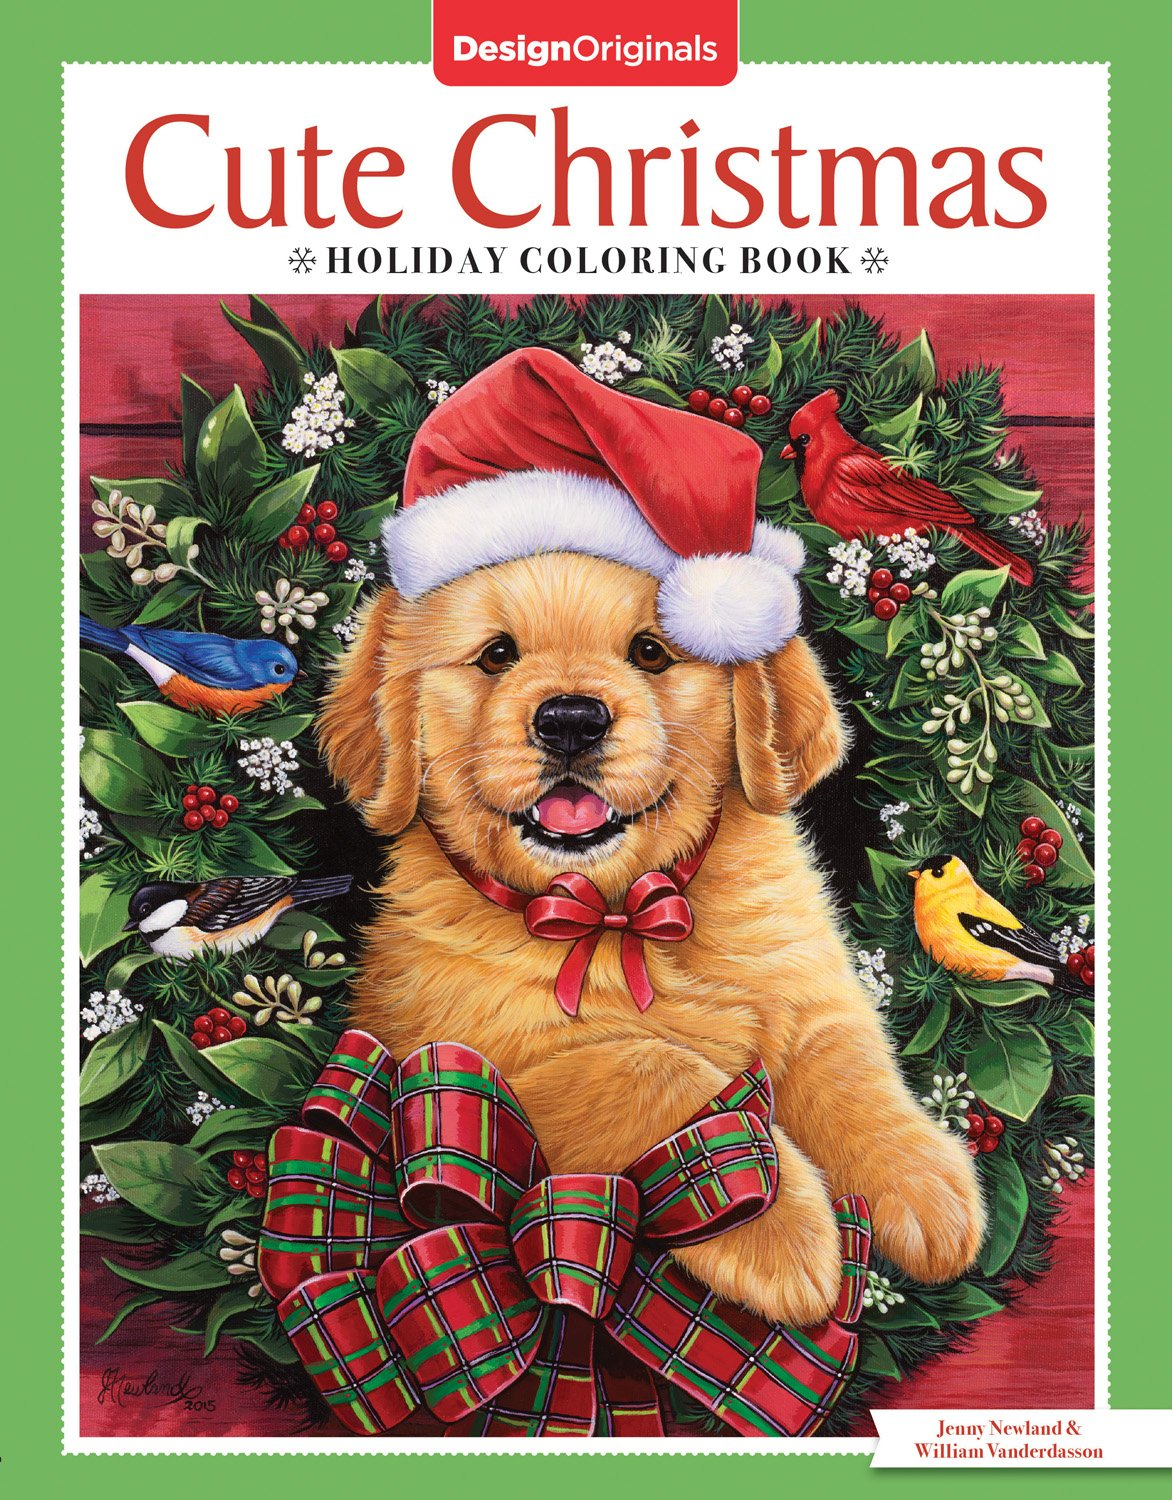 Amazon Com Cute Christmas Holiday Coloring Book Design Originals 32 Kittens Puppies And Other Critters In One Side Only Designs On High Quality Extra Thick Perforated Pages With Inspiring Christmas Quotes 9781497203754 Jenny Newland William